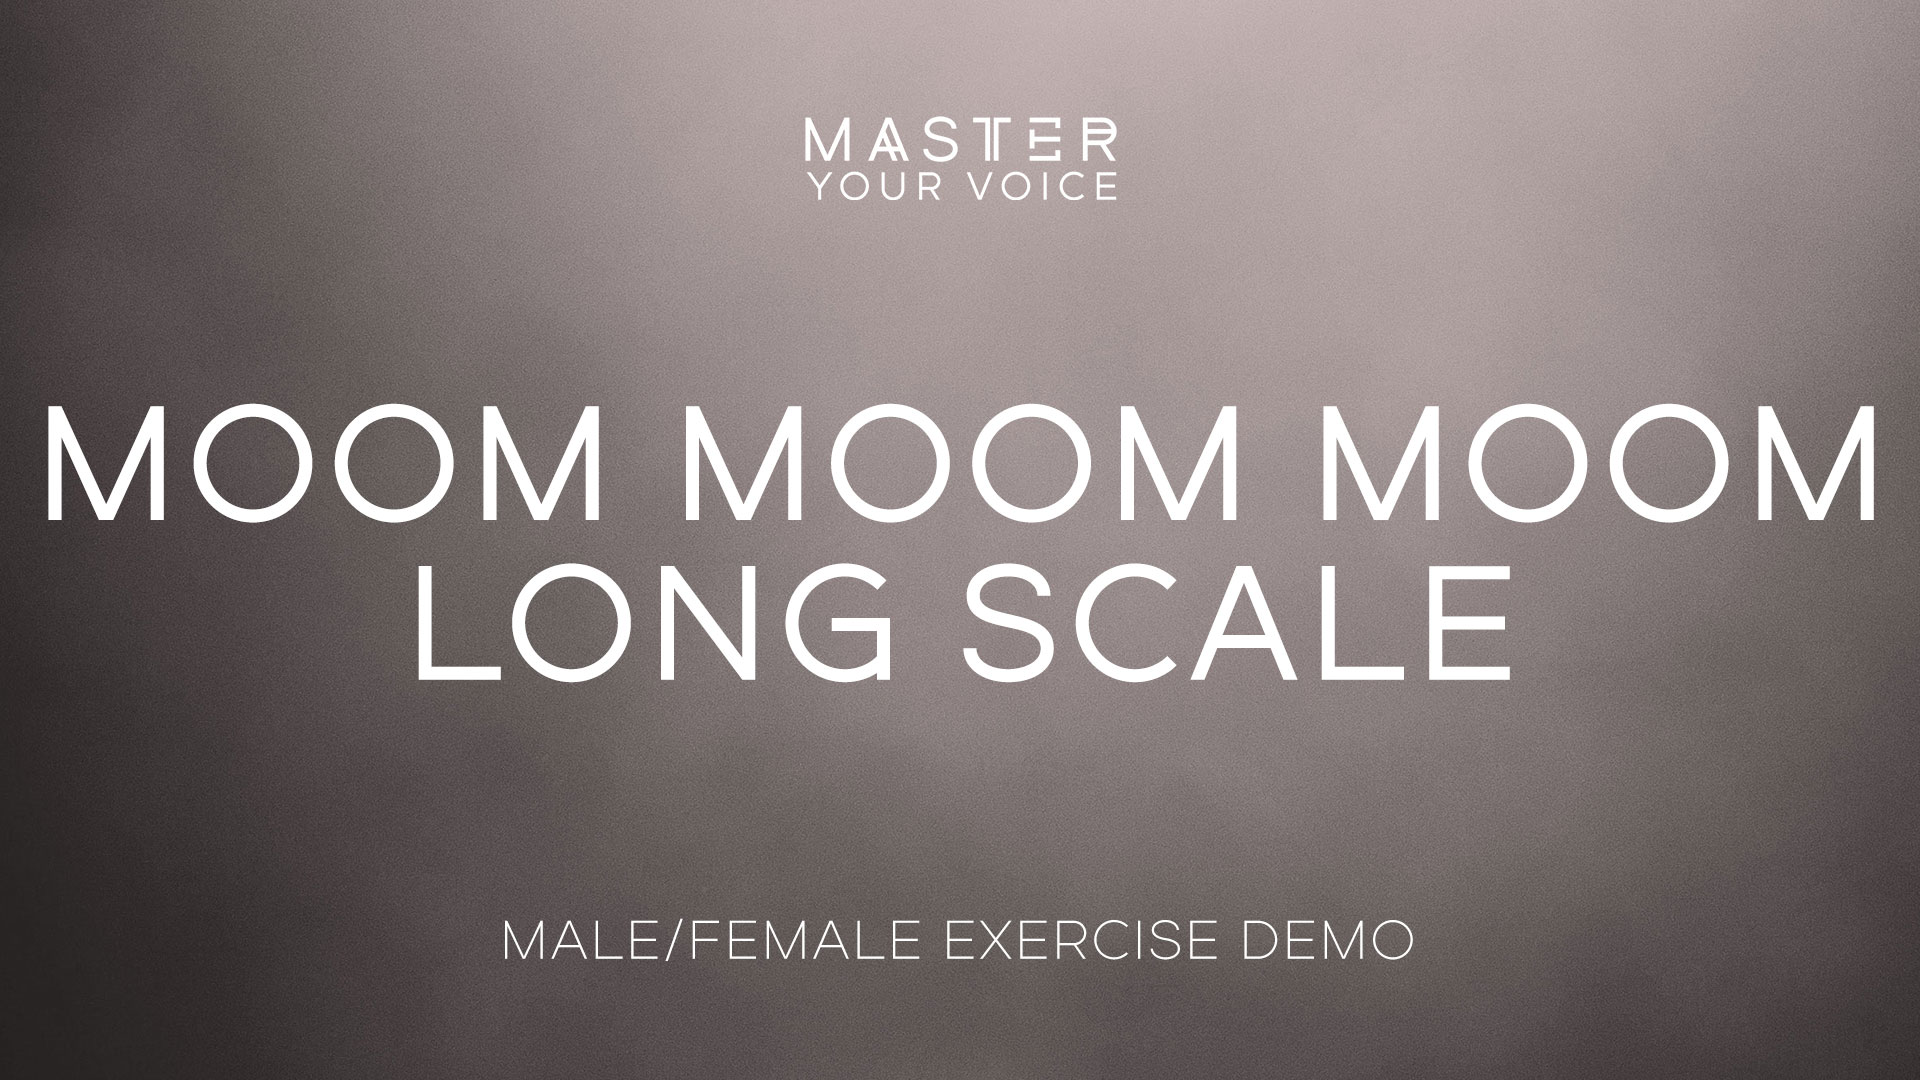 Moom Moom Moom Long Scale Exercise Demo